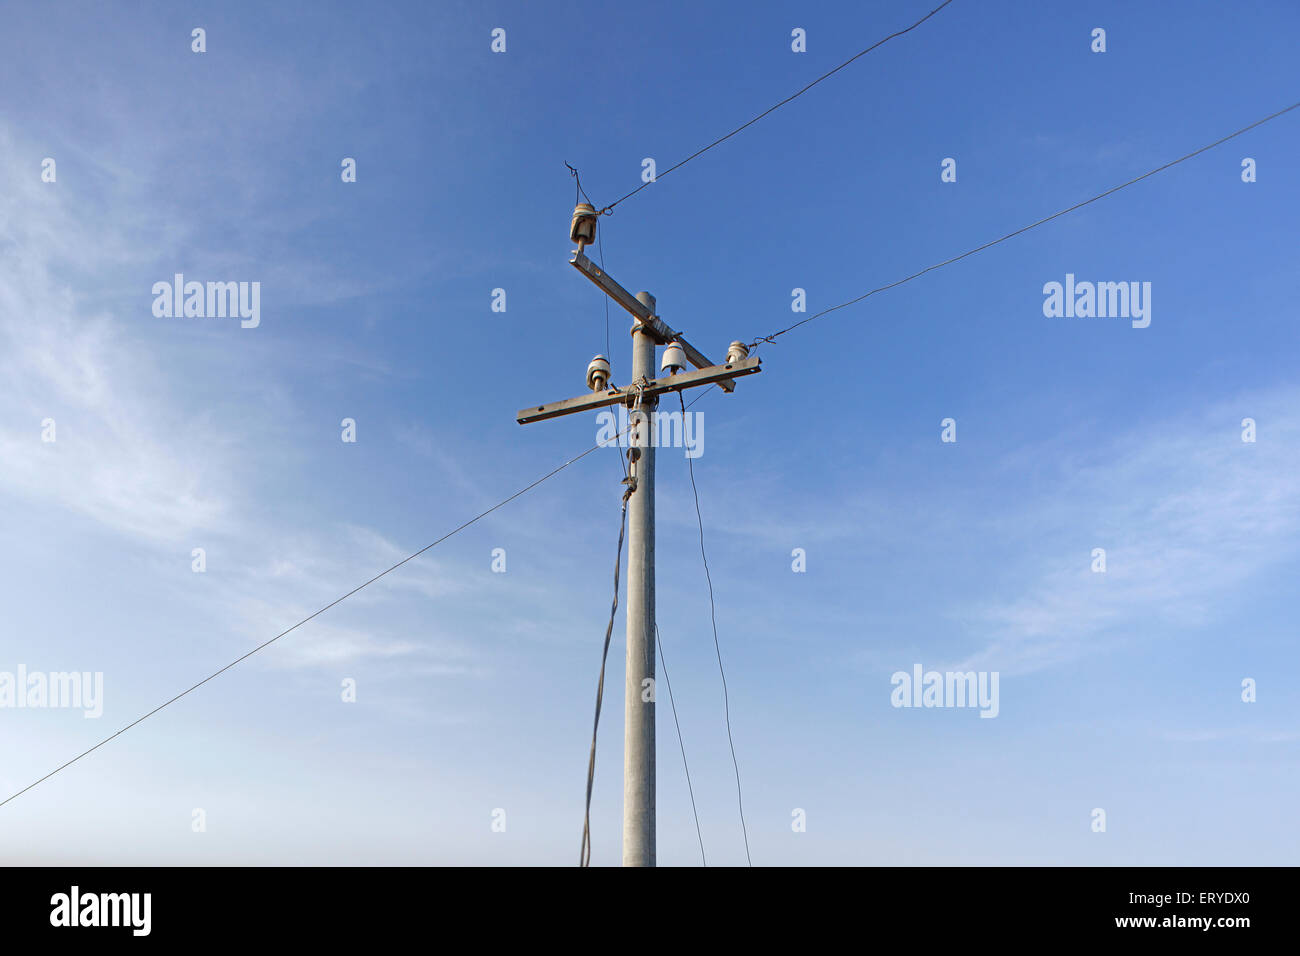 telephone poles and wires stock photos telephone poles and wires rh alamy com